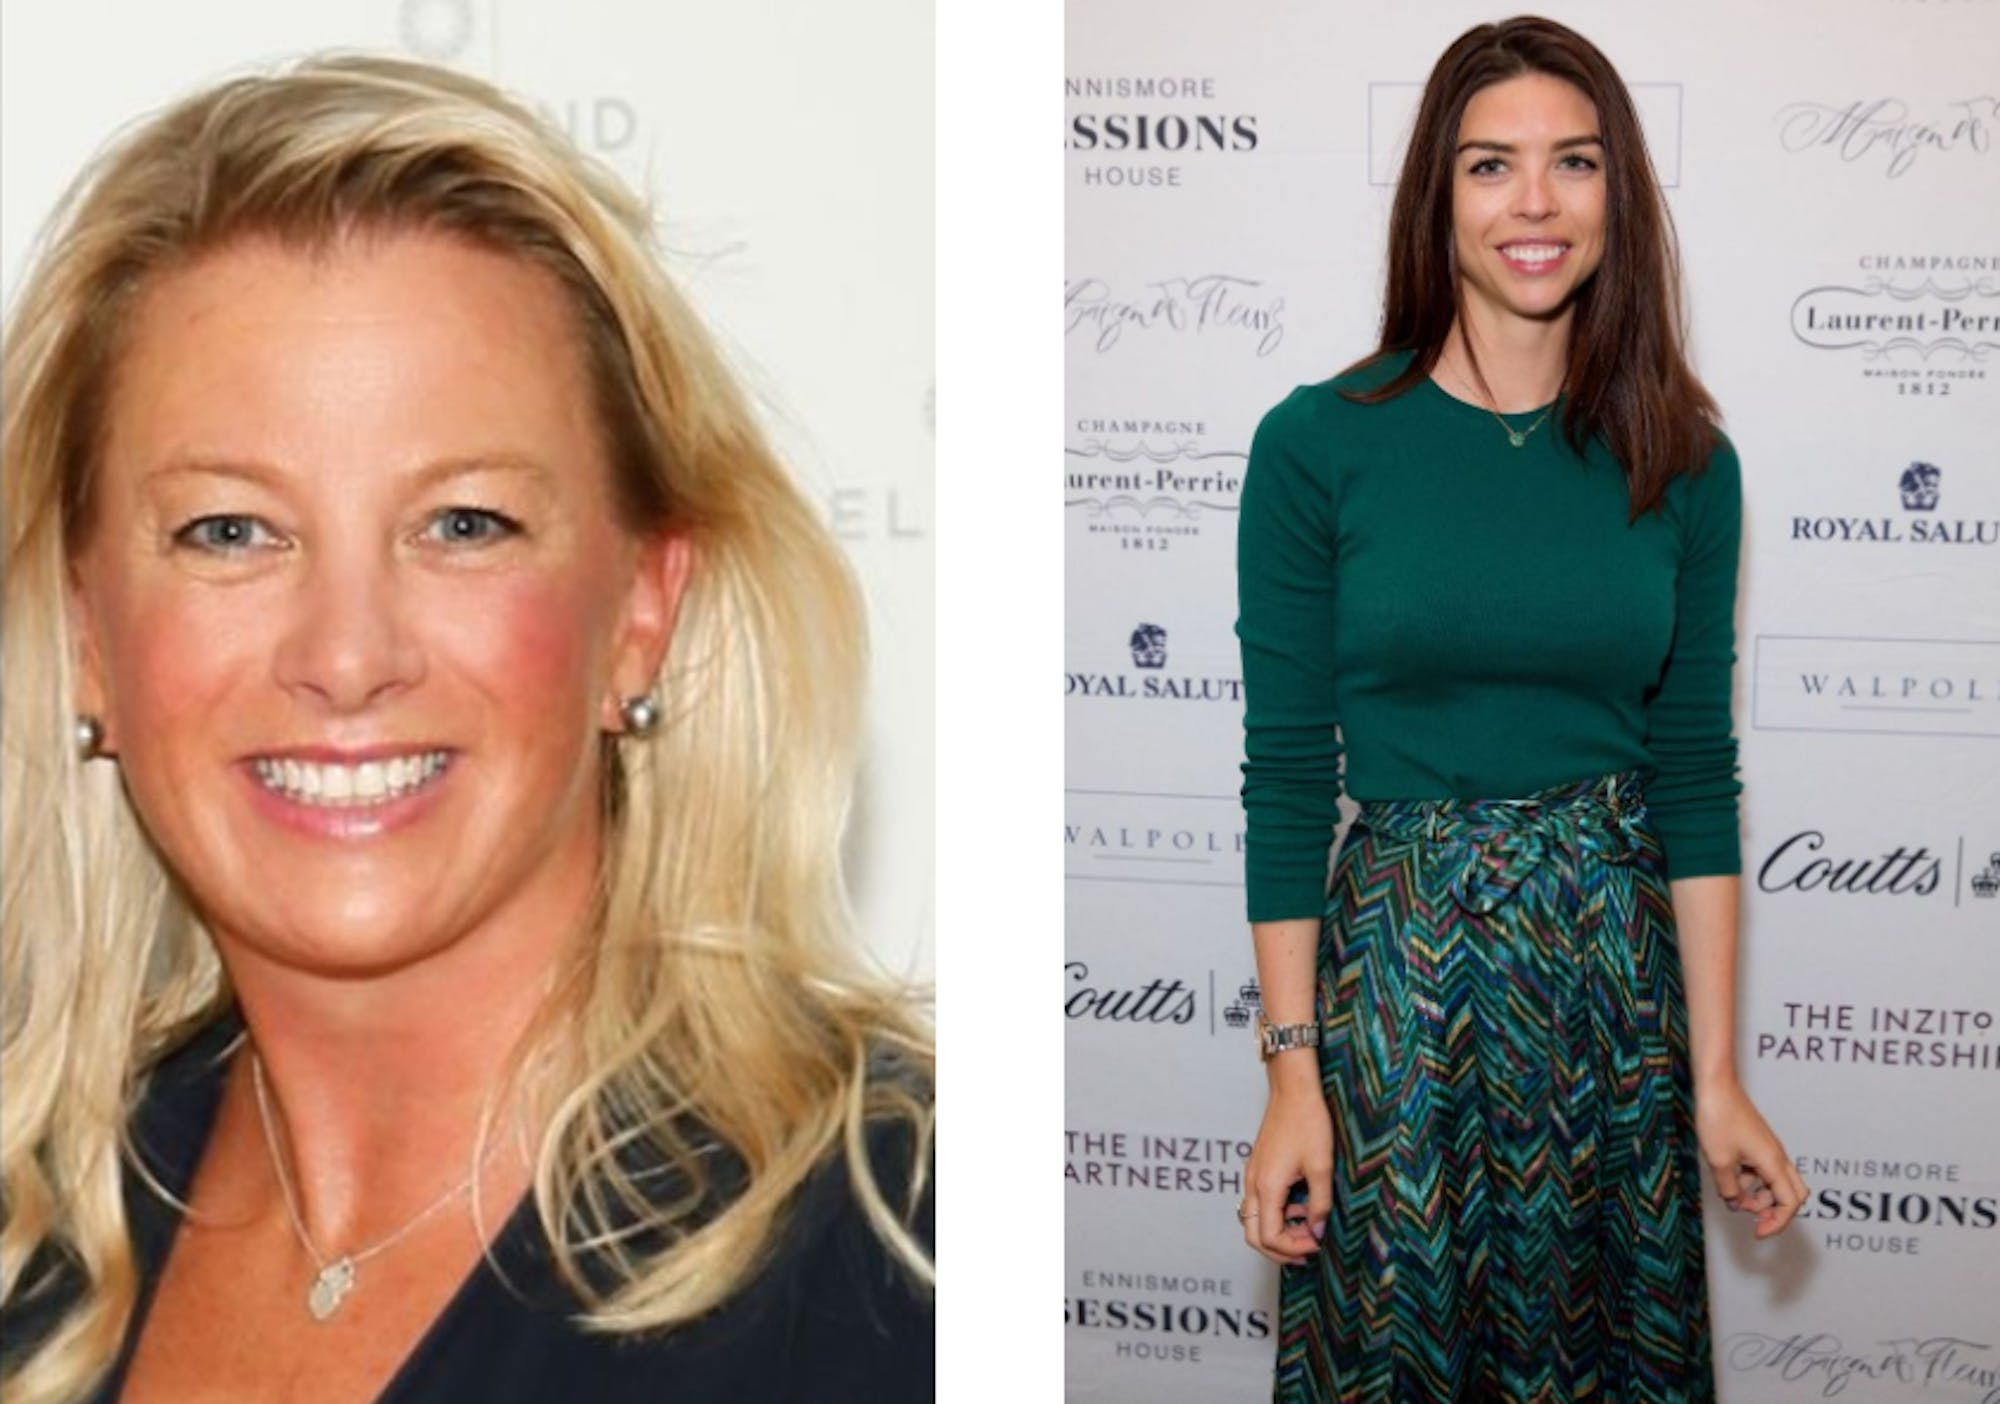 The New Rules for Luxury  Samantha Strawford and Jocelyn Betts,Brand and Corporate Communications Directors at Belmond